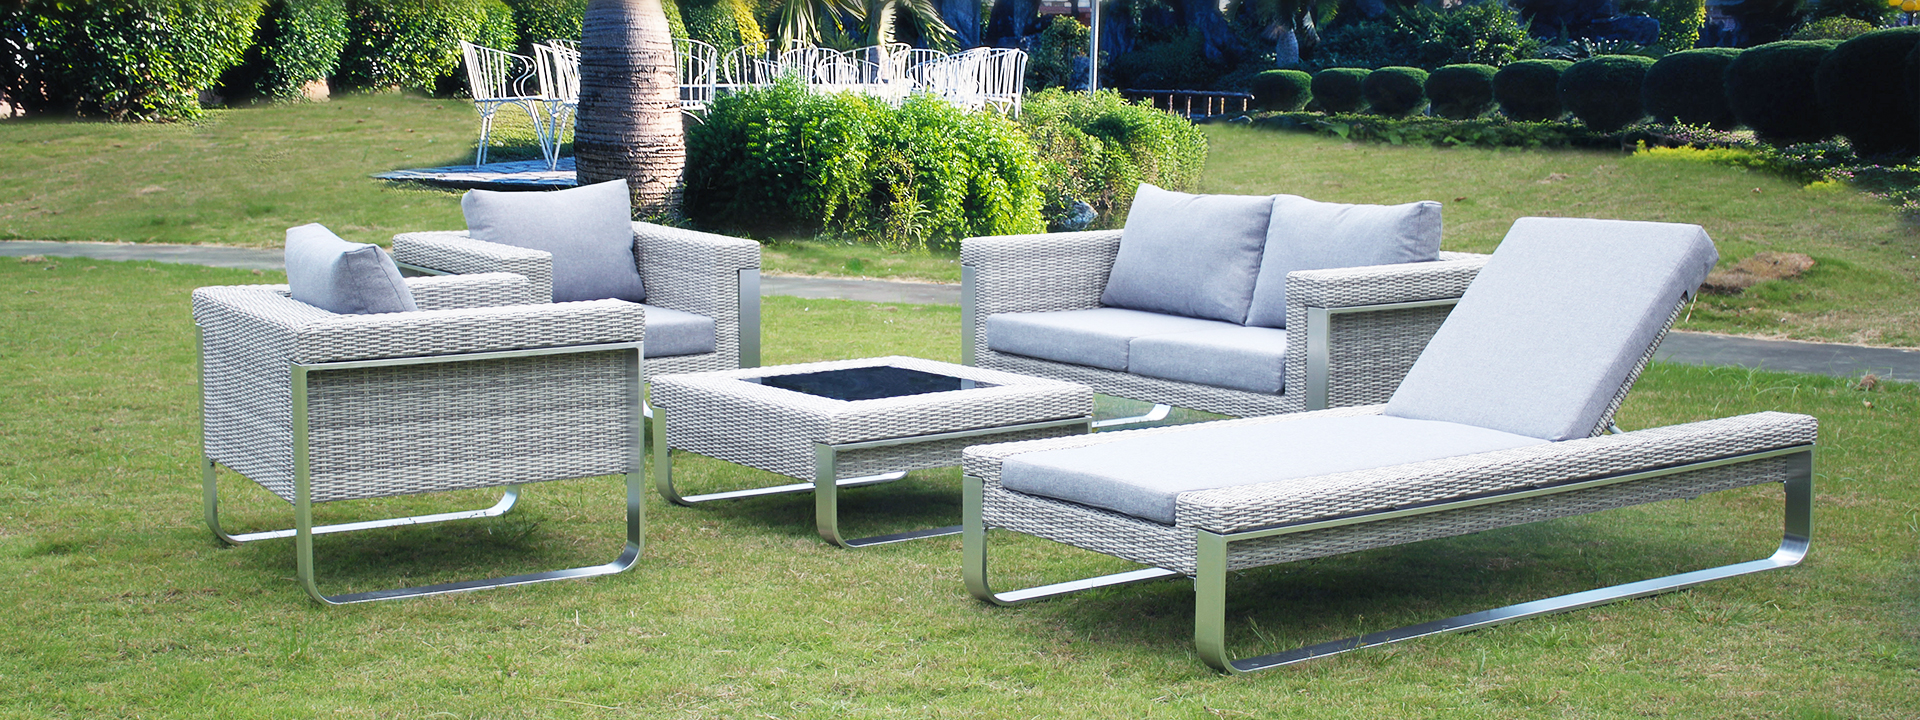 Foshan Darwin Furniture Co Ltd Outdoor Furniture Dining Set # Muebles Tik Tak